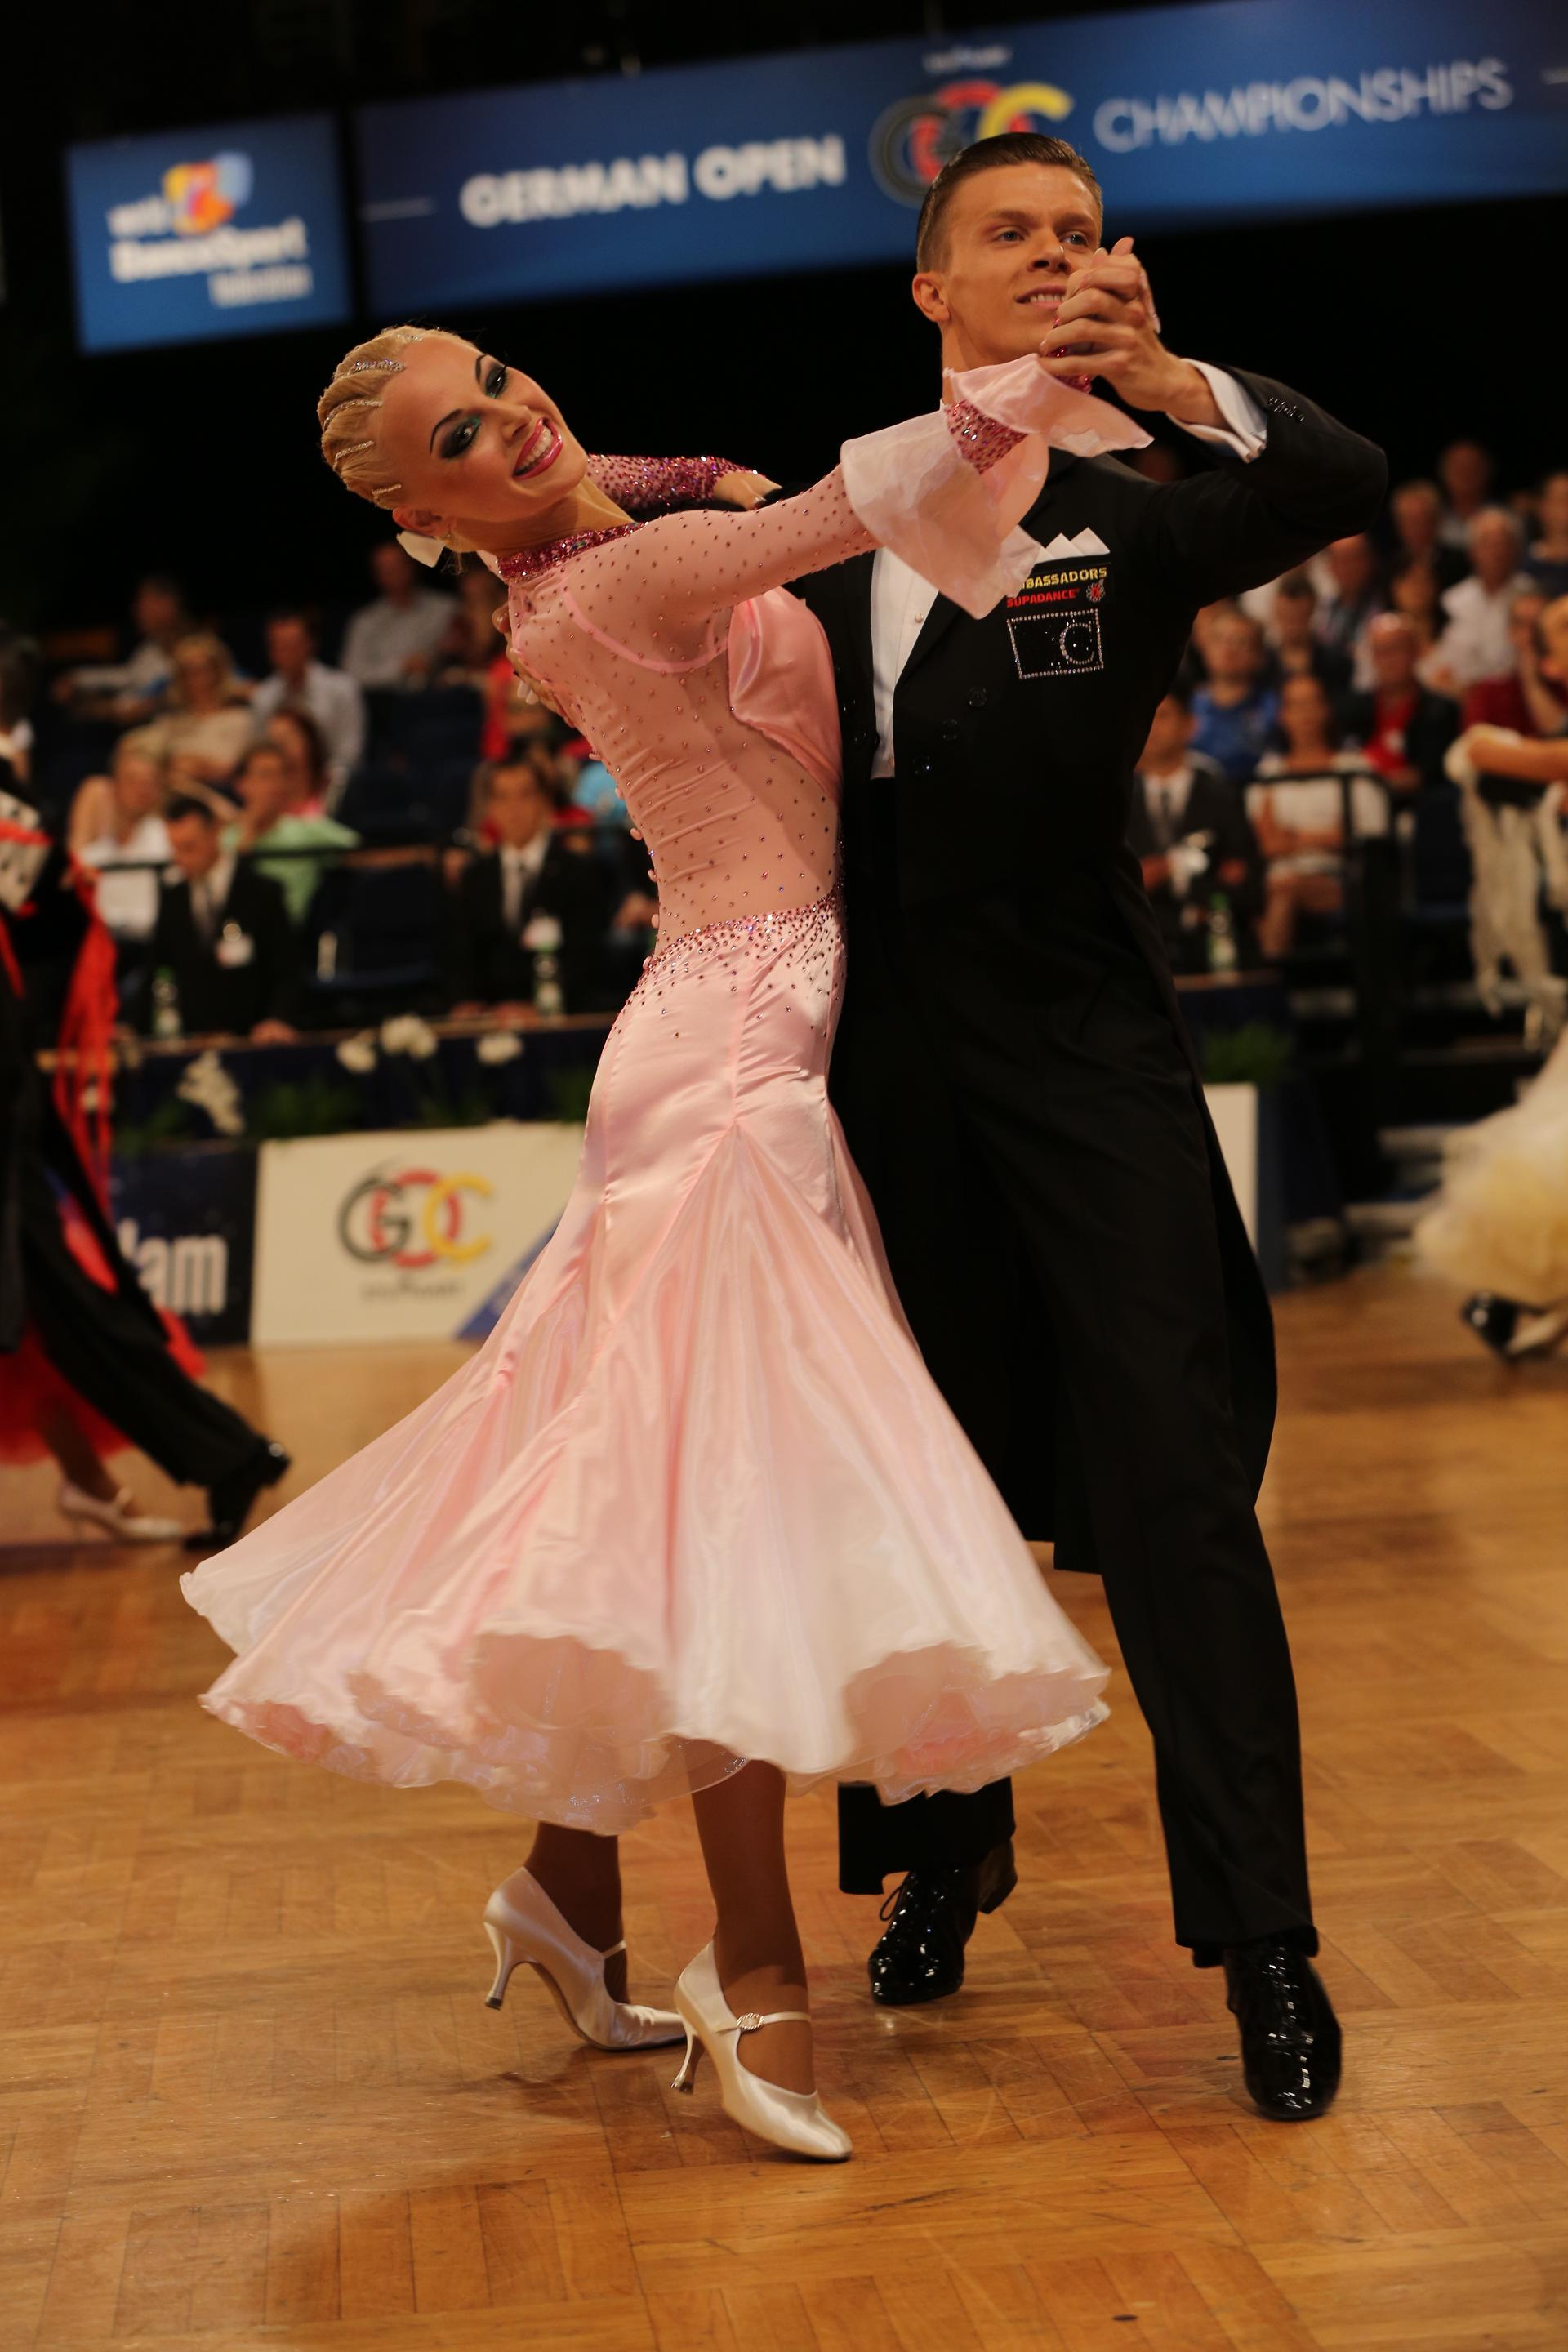 anton-skuratov-and-alona-uehlin-wdsf-am-ballroom